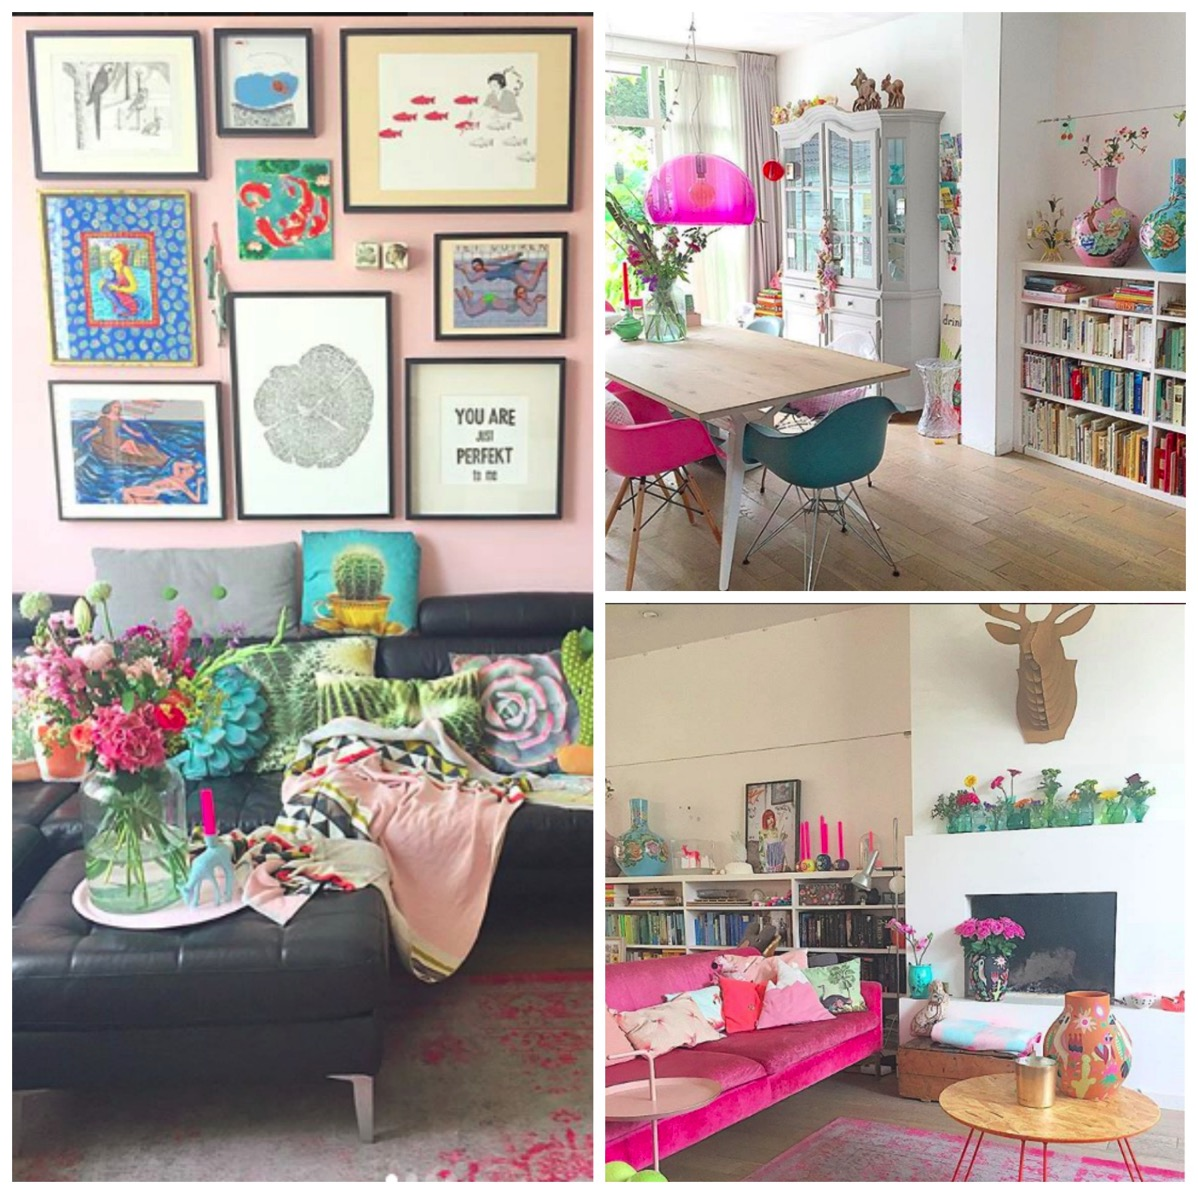 Pink and colorful home gallery wall and livingroom